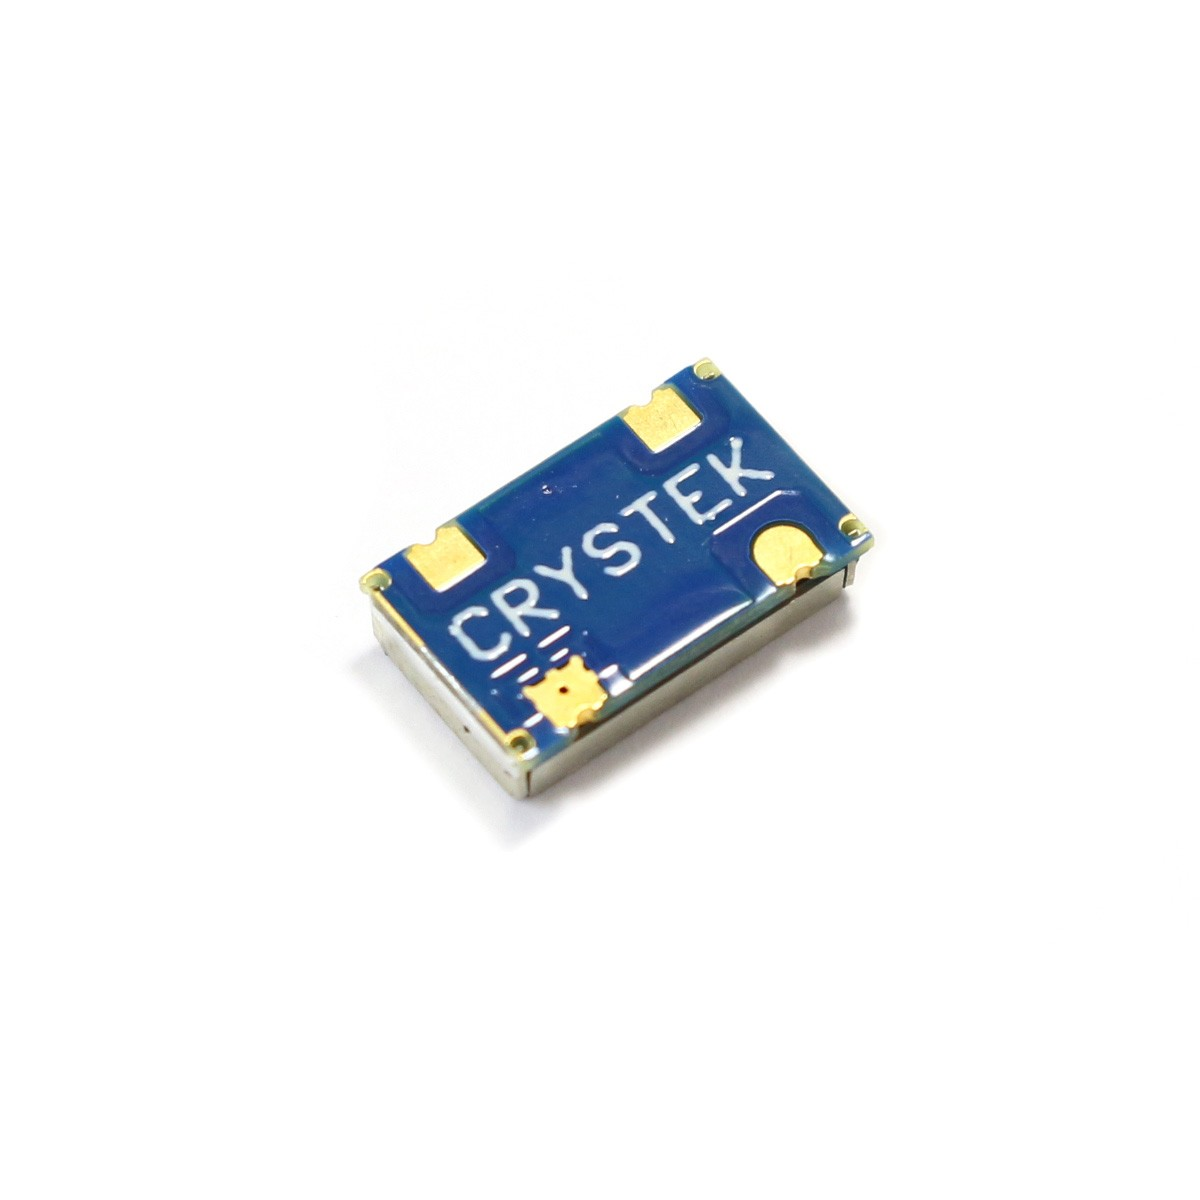 CRYSTEK Horloge à Bruit de Phase Ultra Faible 22.5792MHz 3.3V 25ppm HCMOS